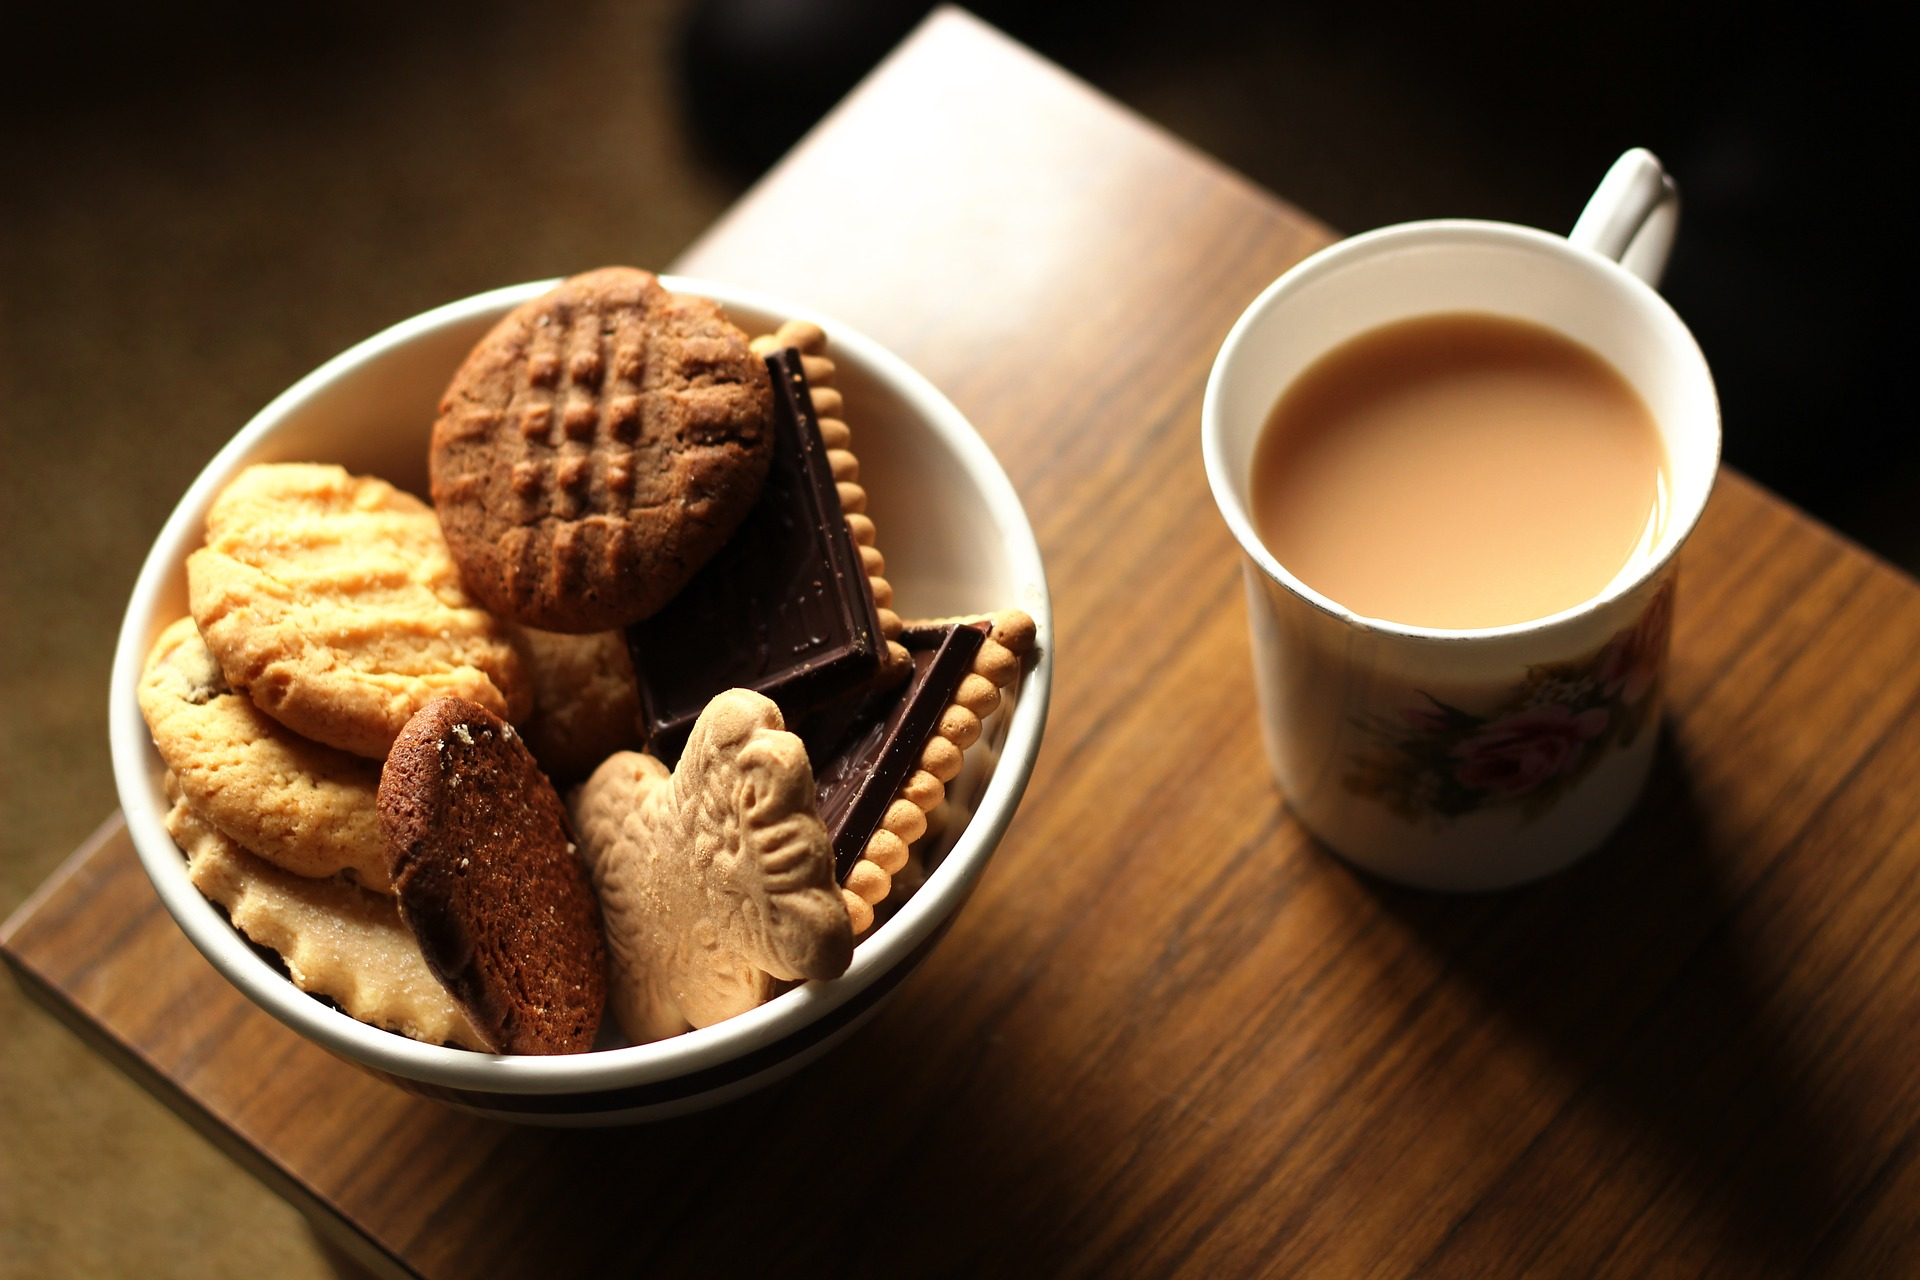 Pack an essentials box, with a kettle for hot drinks and biscuits for an energy boost.